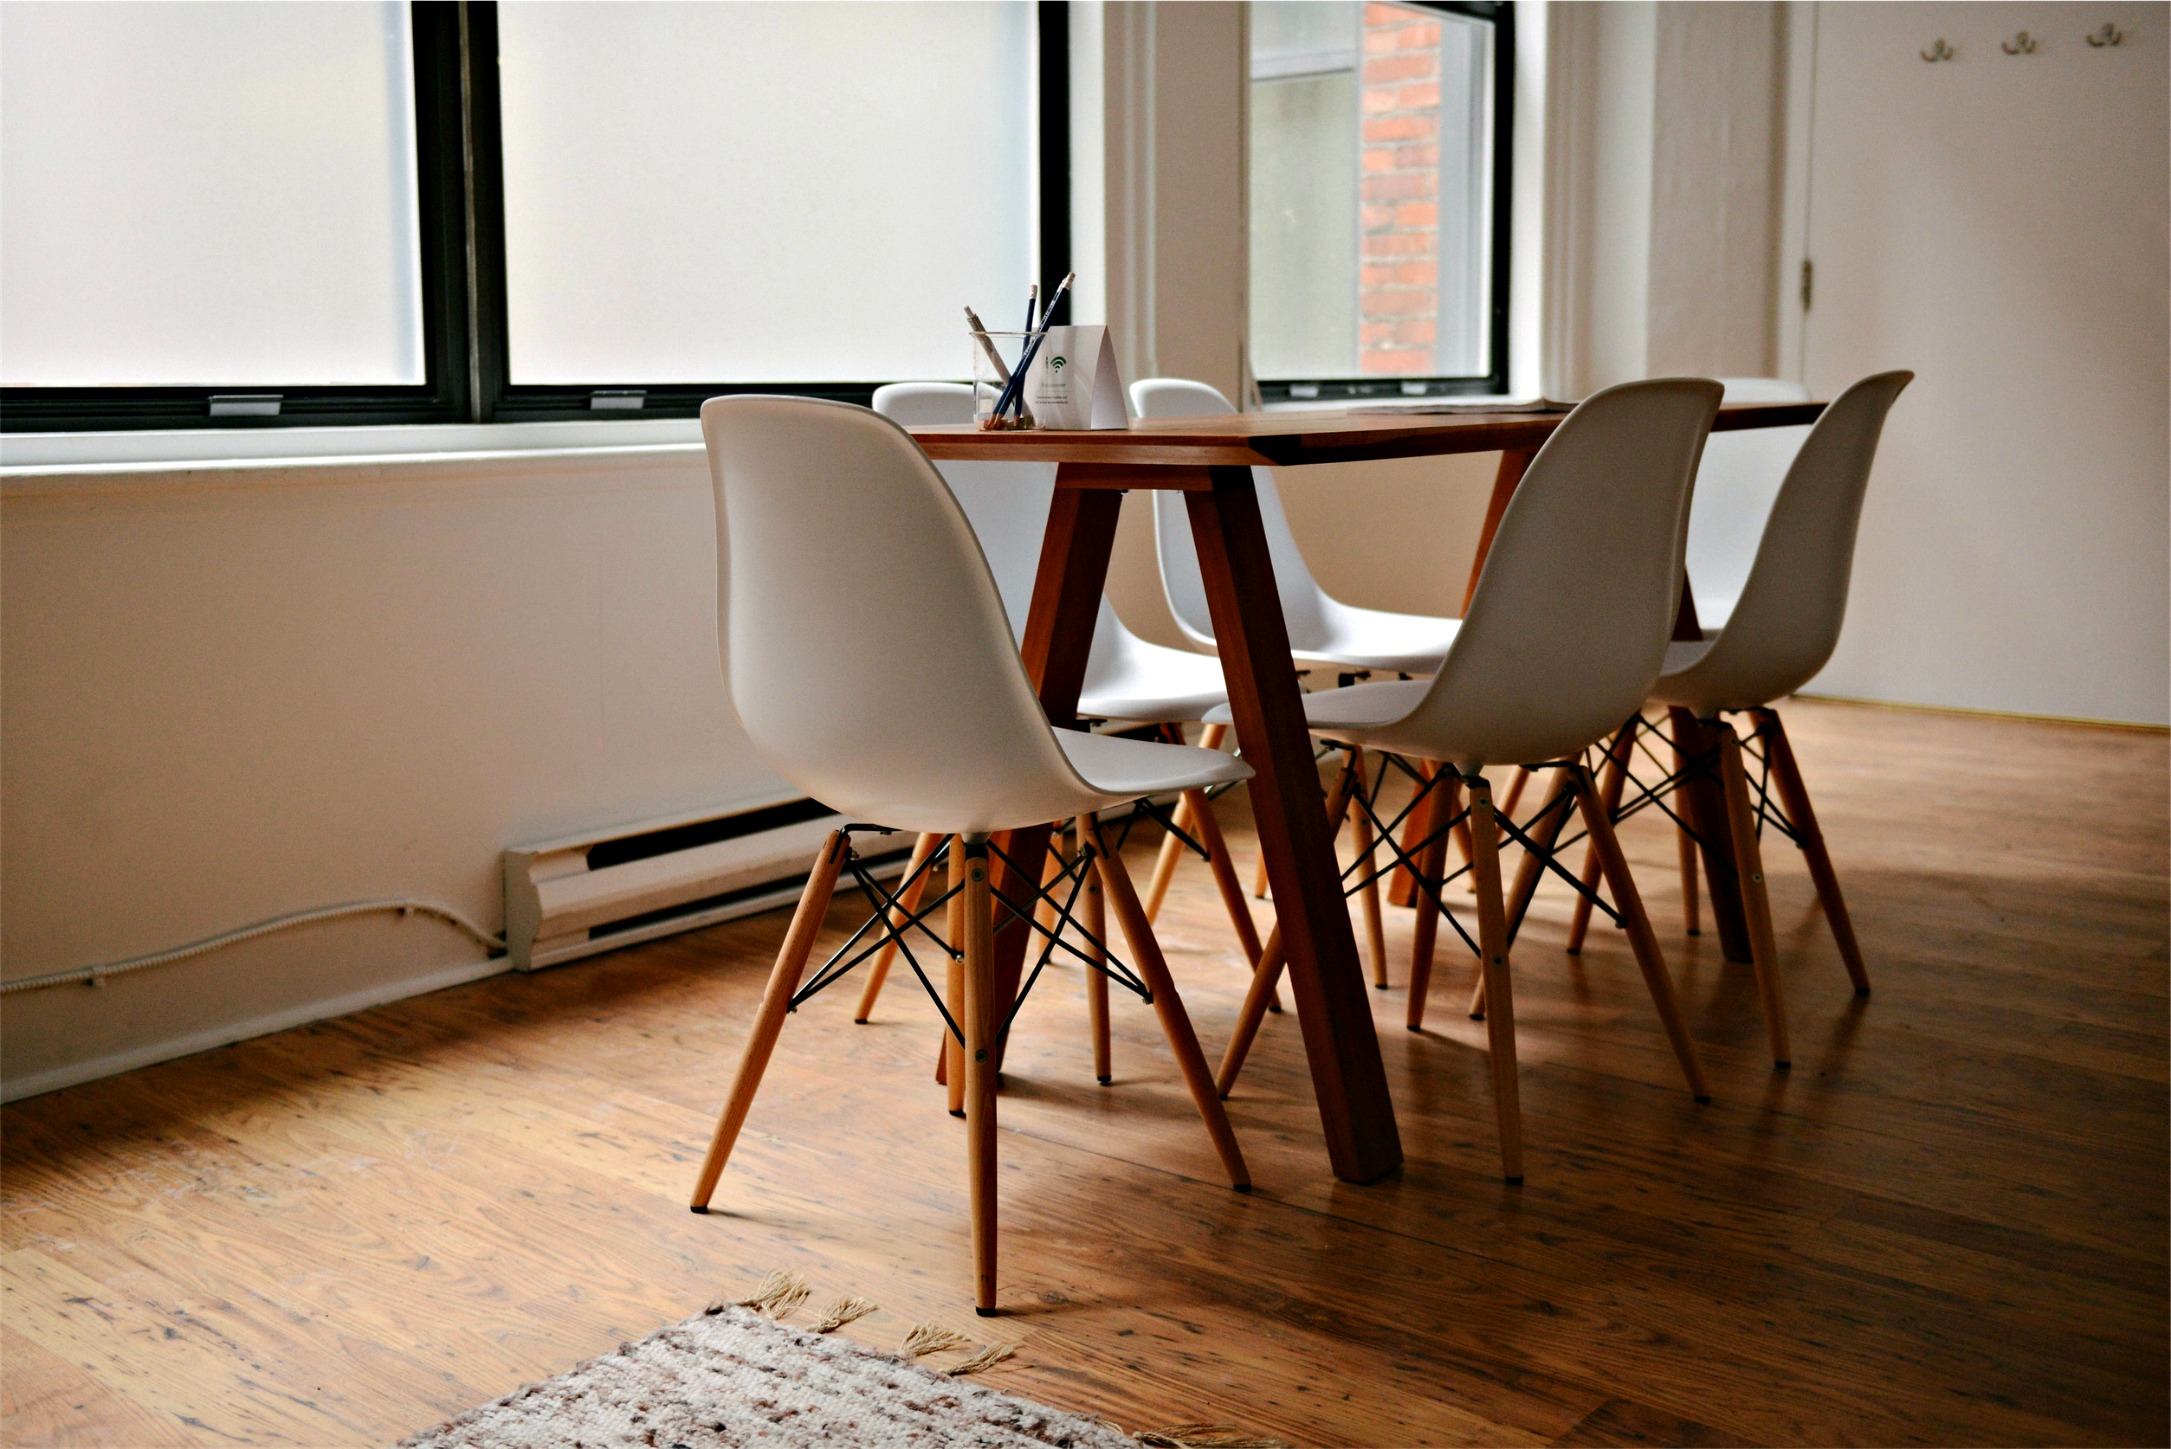 How to hire talent for your startup, post-funding